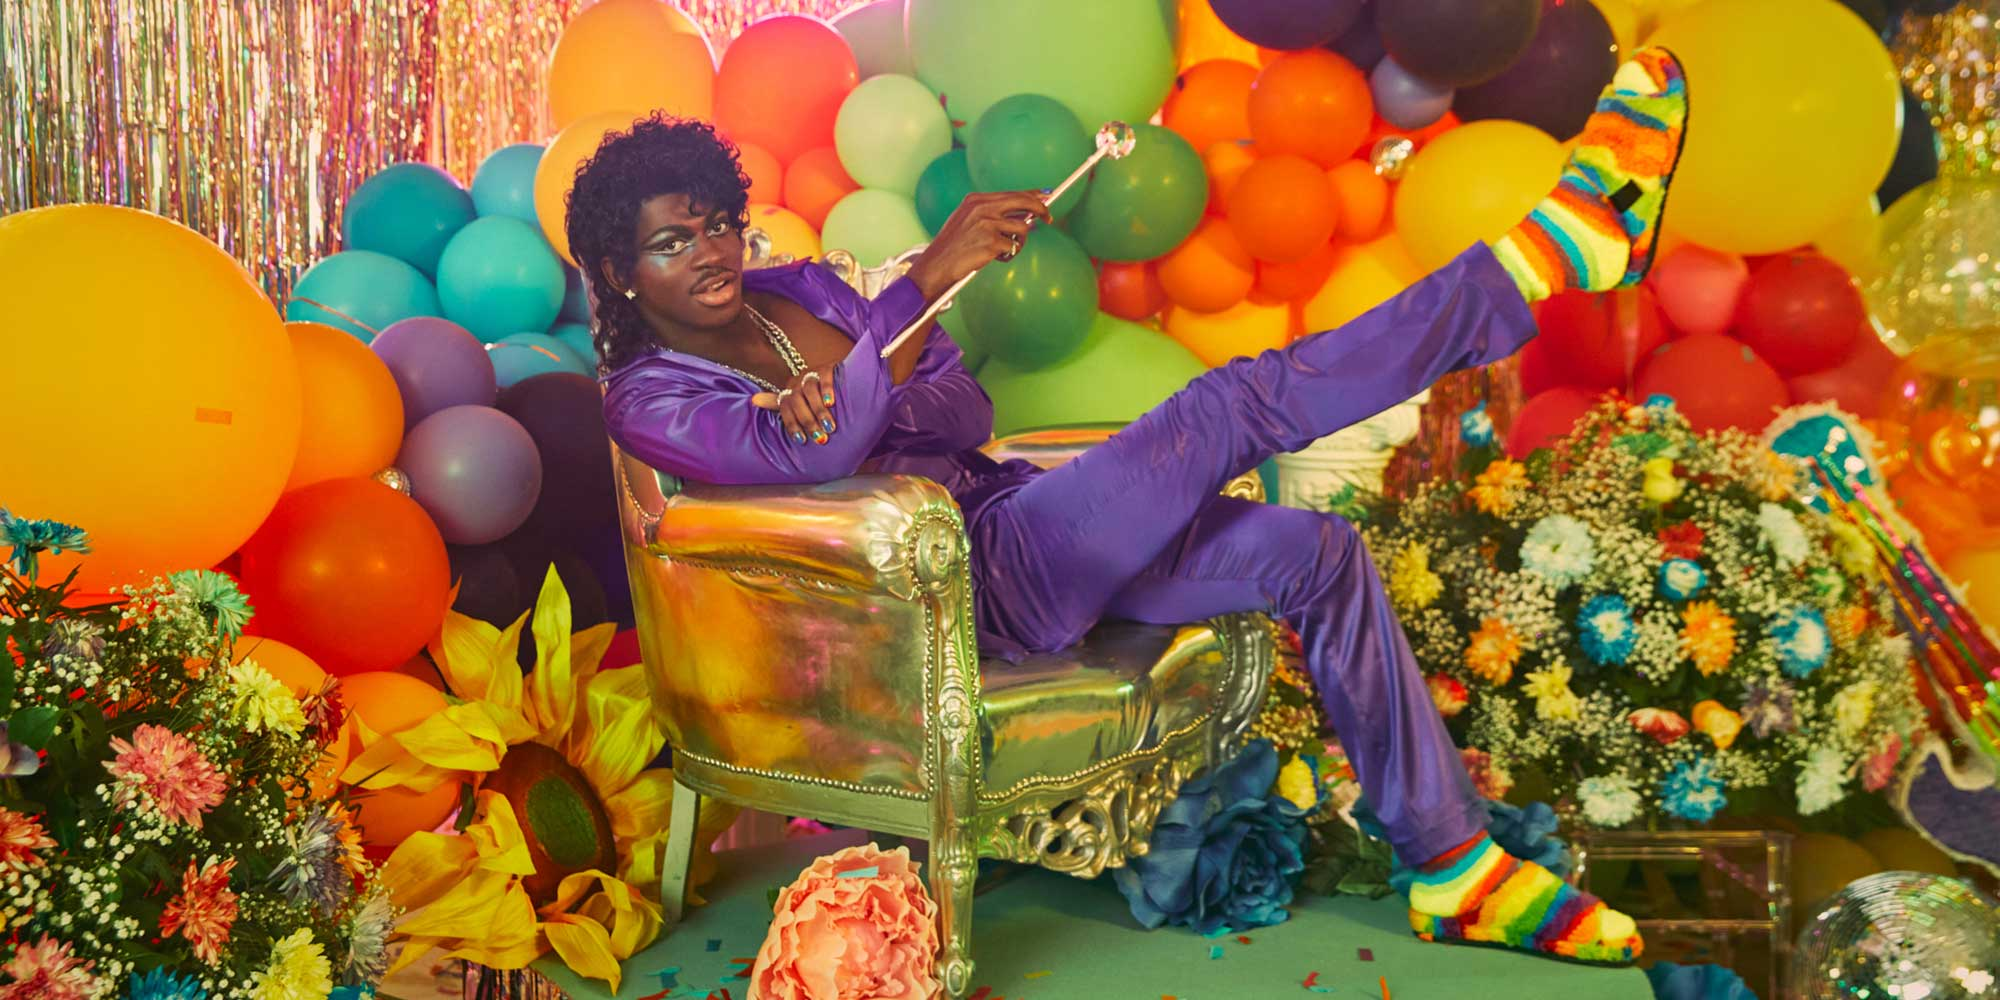 Lil Nas X wearing the new Pride collection sitting on the chair in a colourful backdrop.